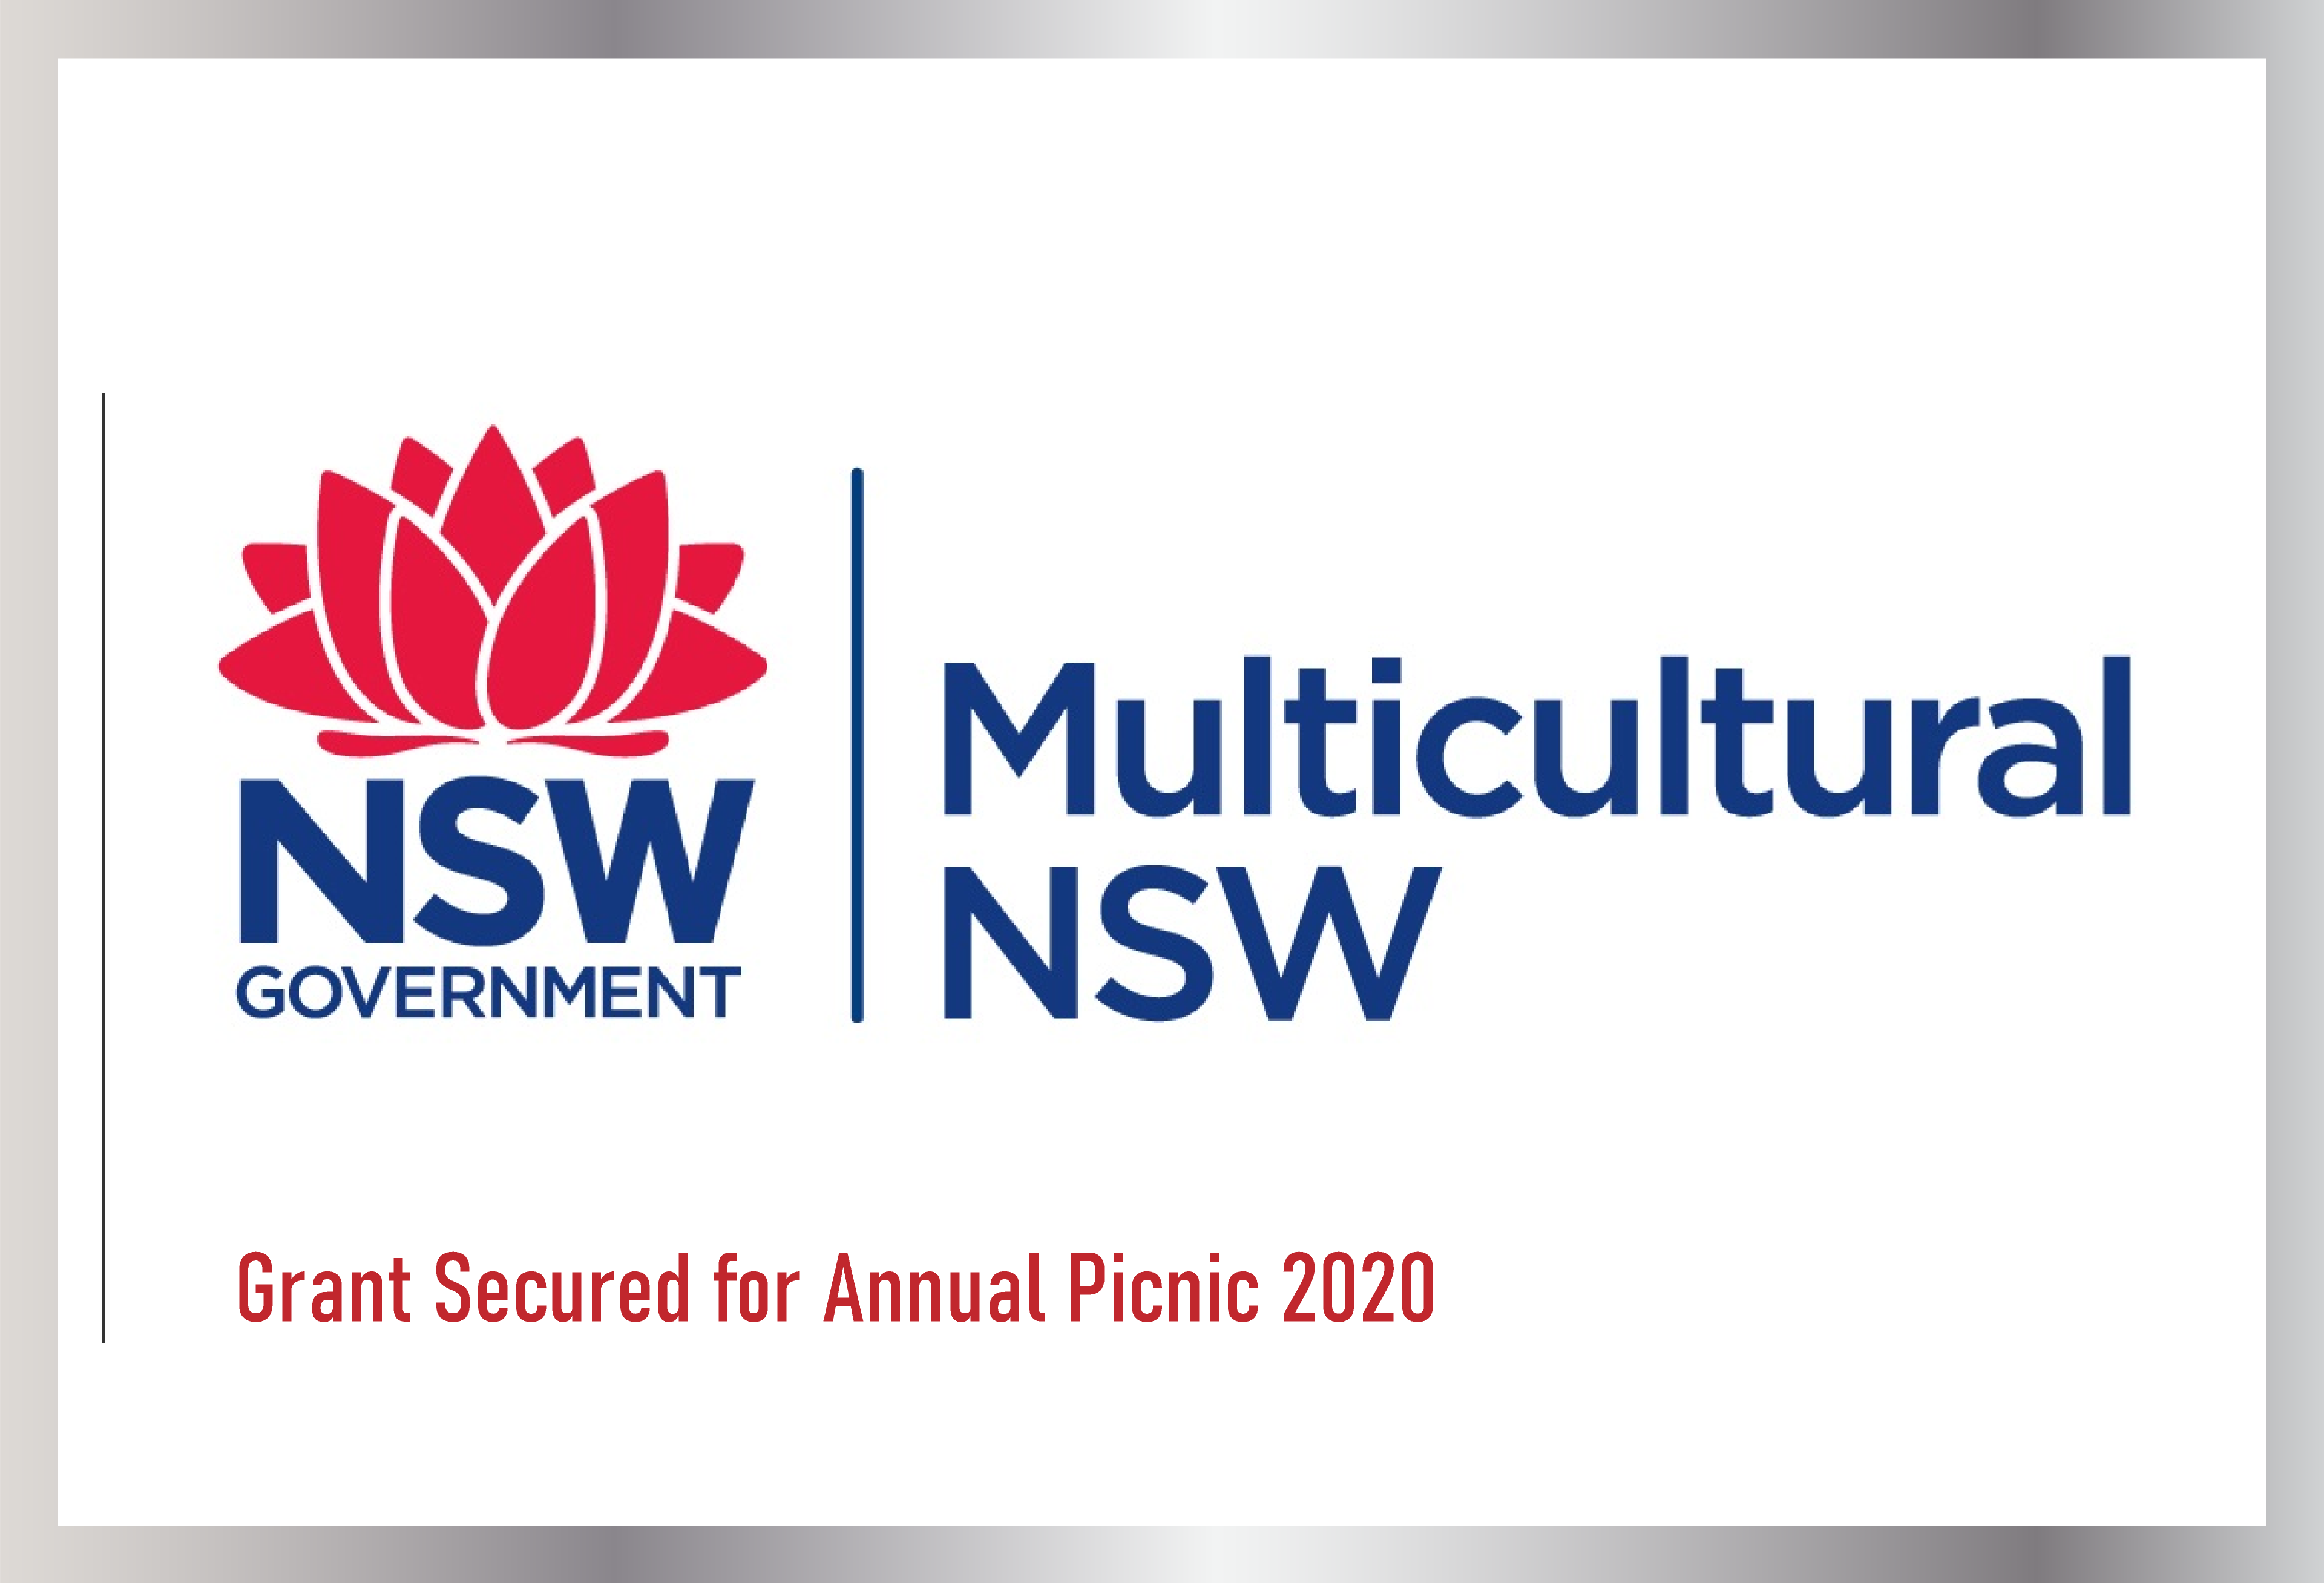 We are proud to inform that we have secured our first grant for 2020. Multicultural NSW has granted us $1000 towards our Annual Picnic Event which is going to be conducted on the 23rd of February at Lizard Log. We are very grateful to Multicultural NSW.